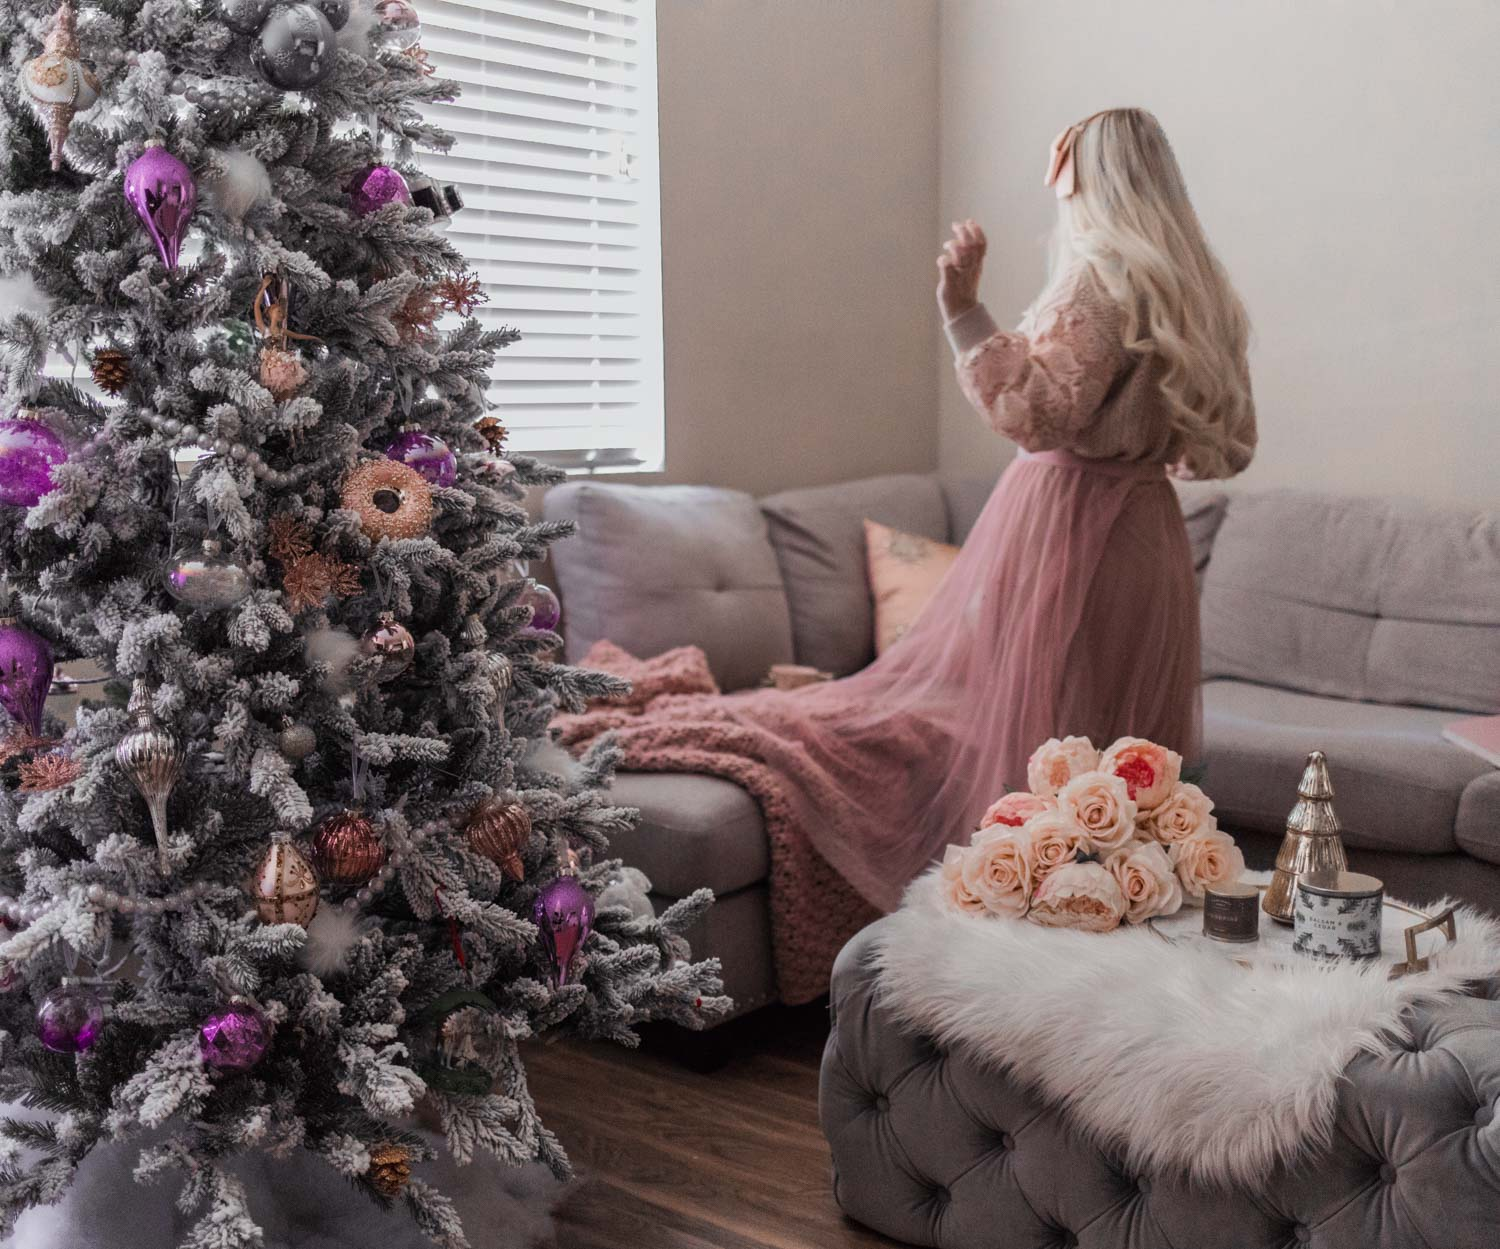 Elizabeth Hugen of Lizzie in Lace shares her feminine Christmas decor.